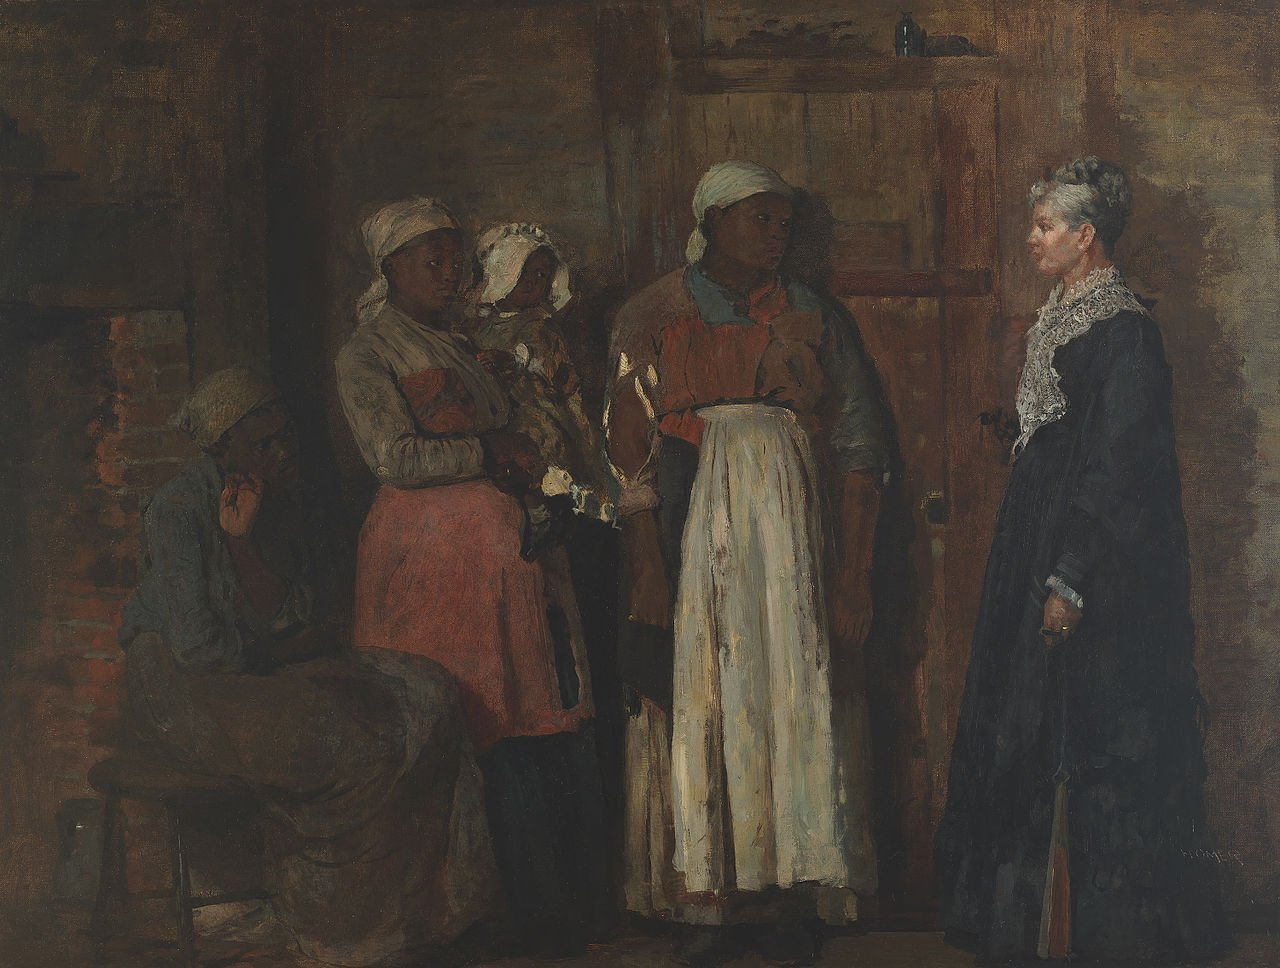 A Visit from the old Mistress by Wilmslow Homer (1876)